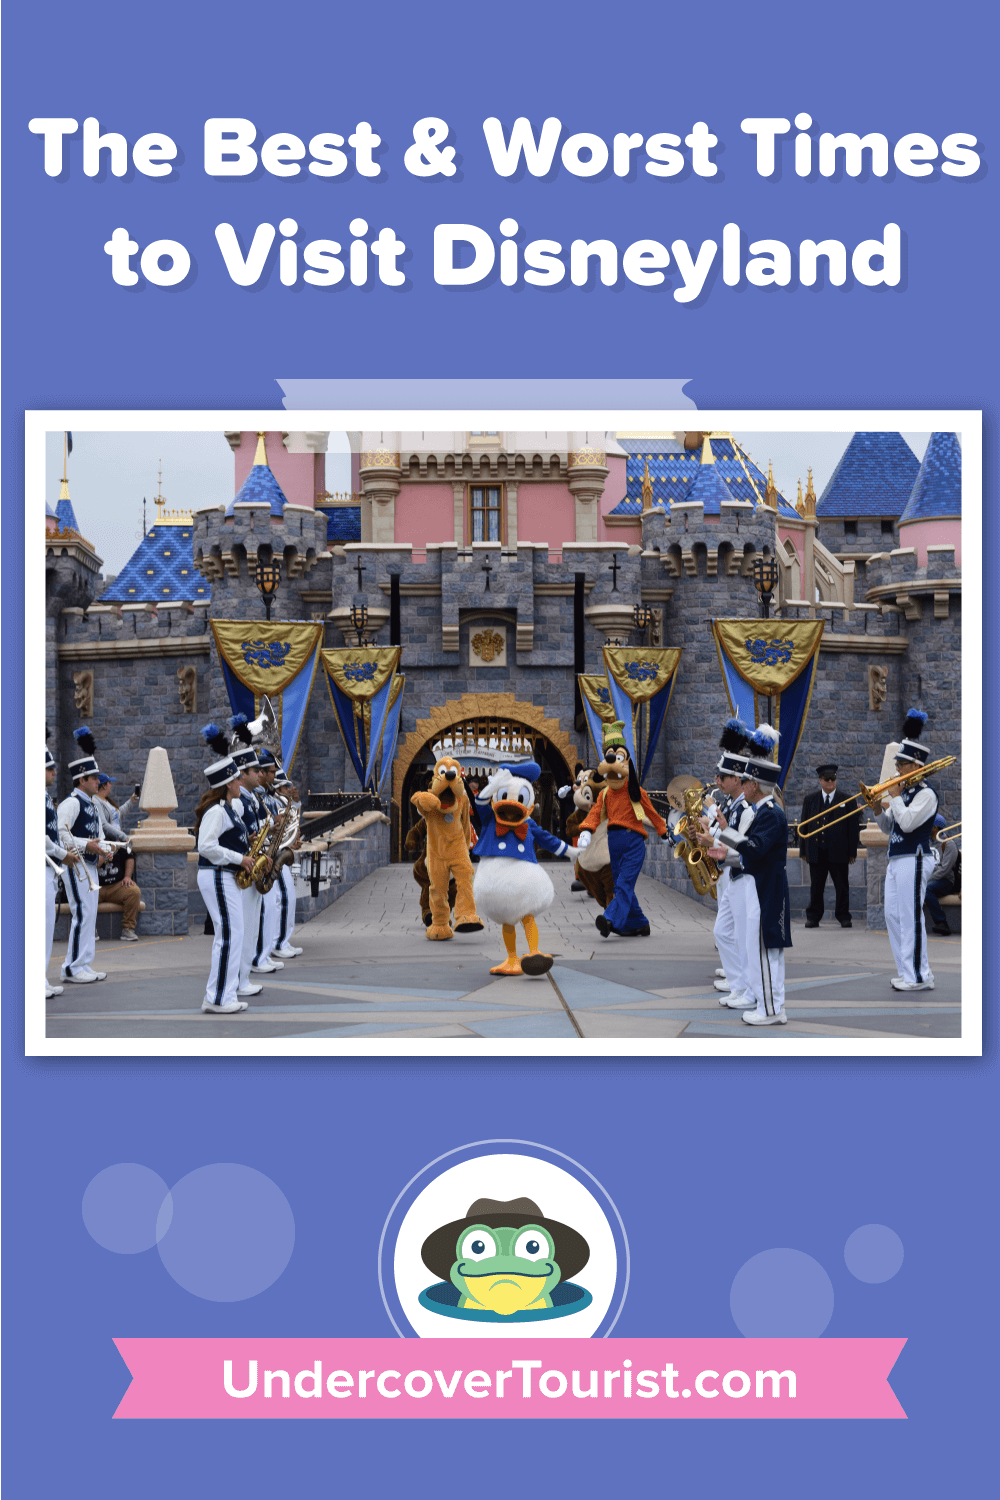 When Is The Best Time To Book A Flight For Christmas 2020 The Best Time to Visit Disneyland in 2019 and 2020